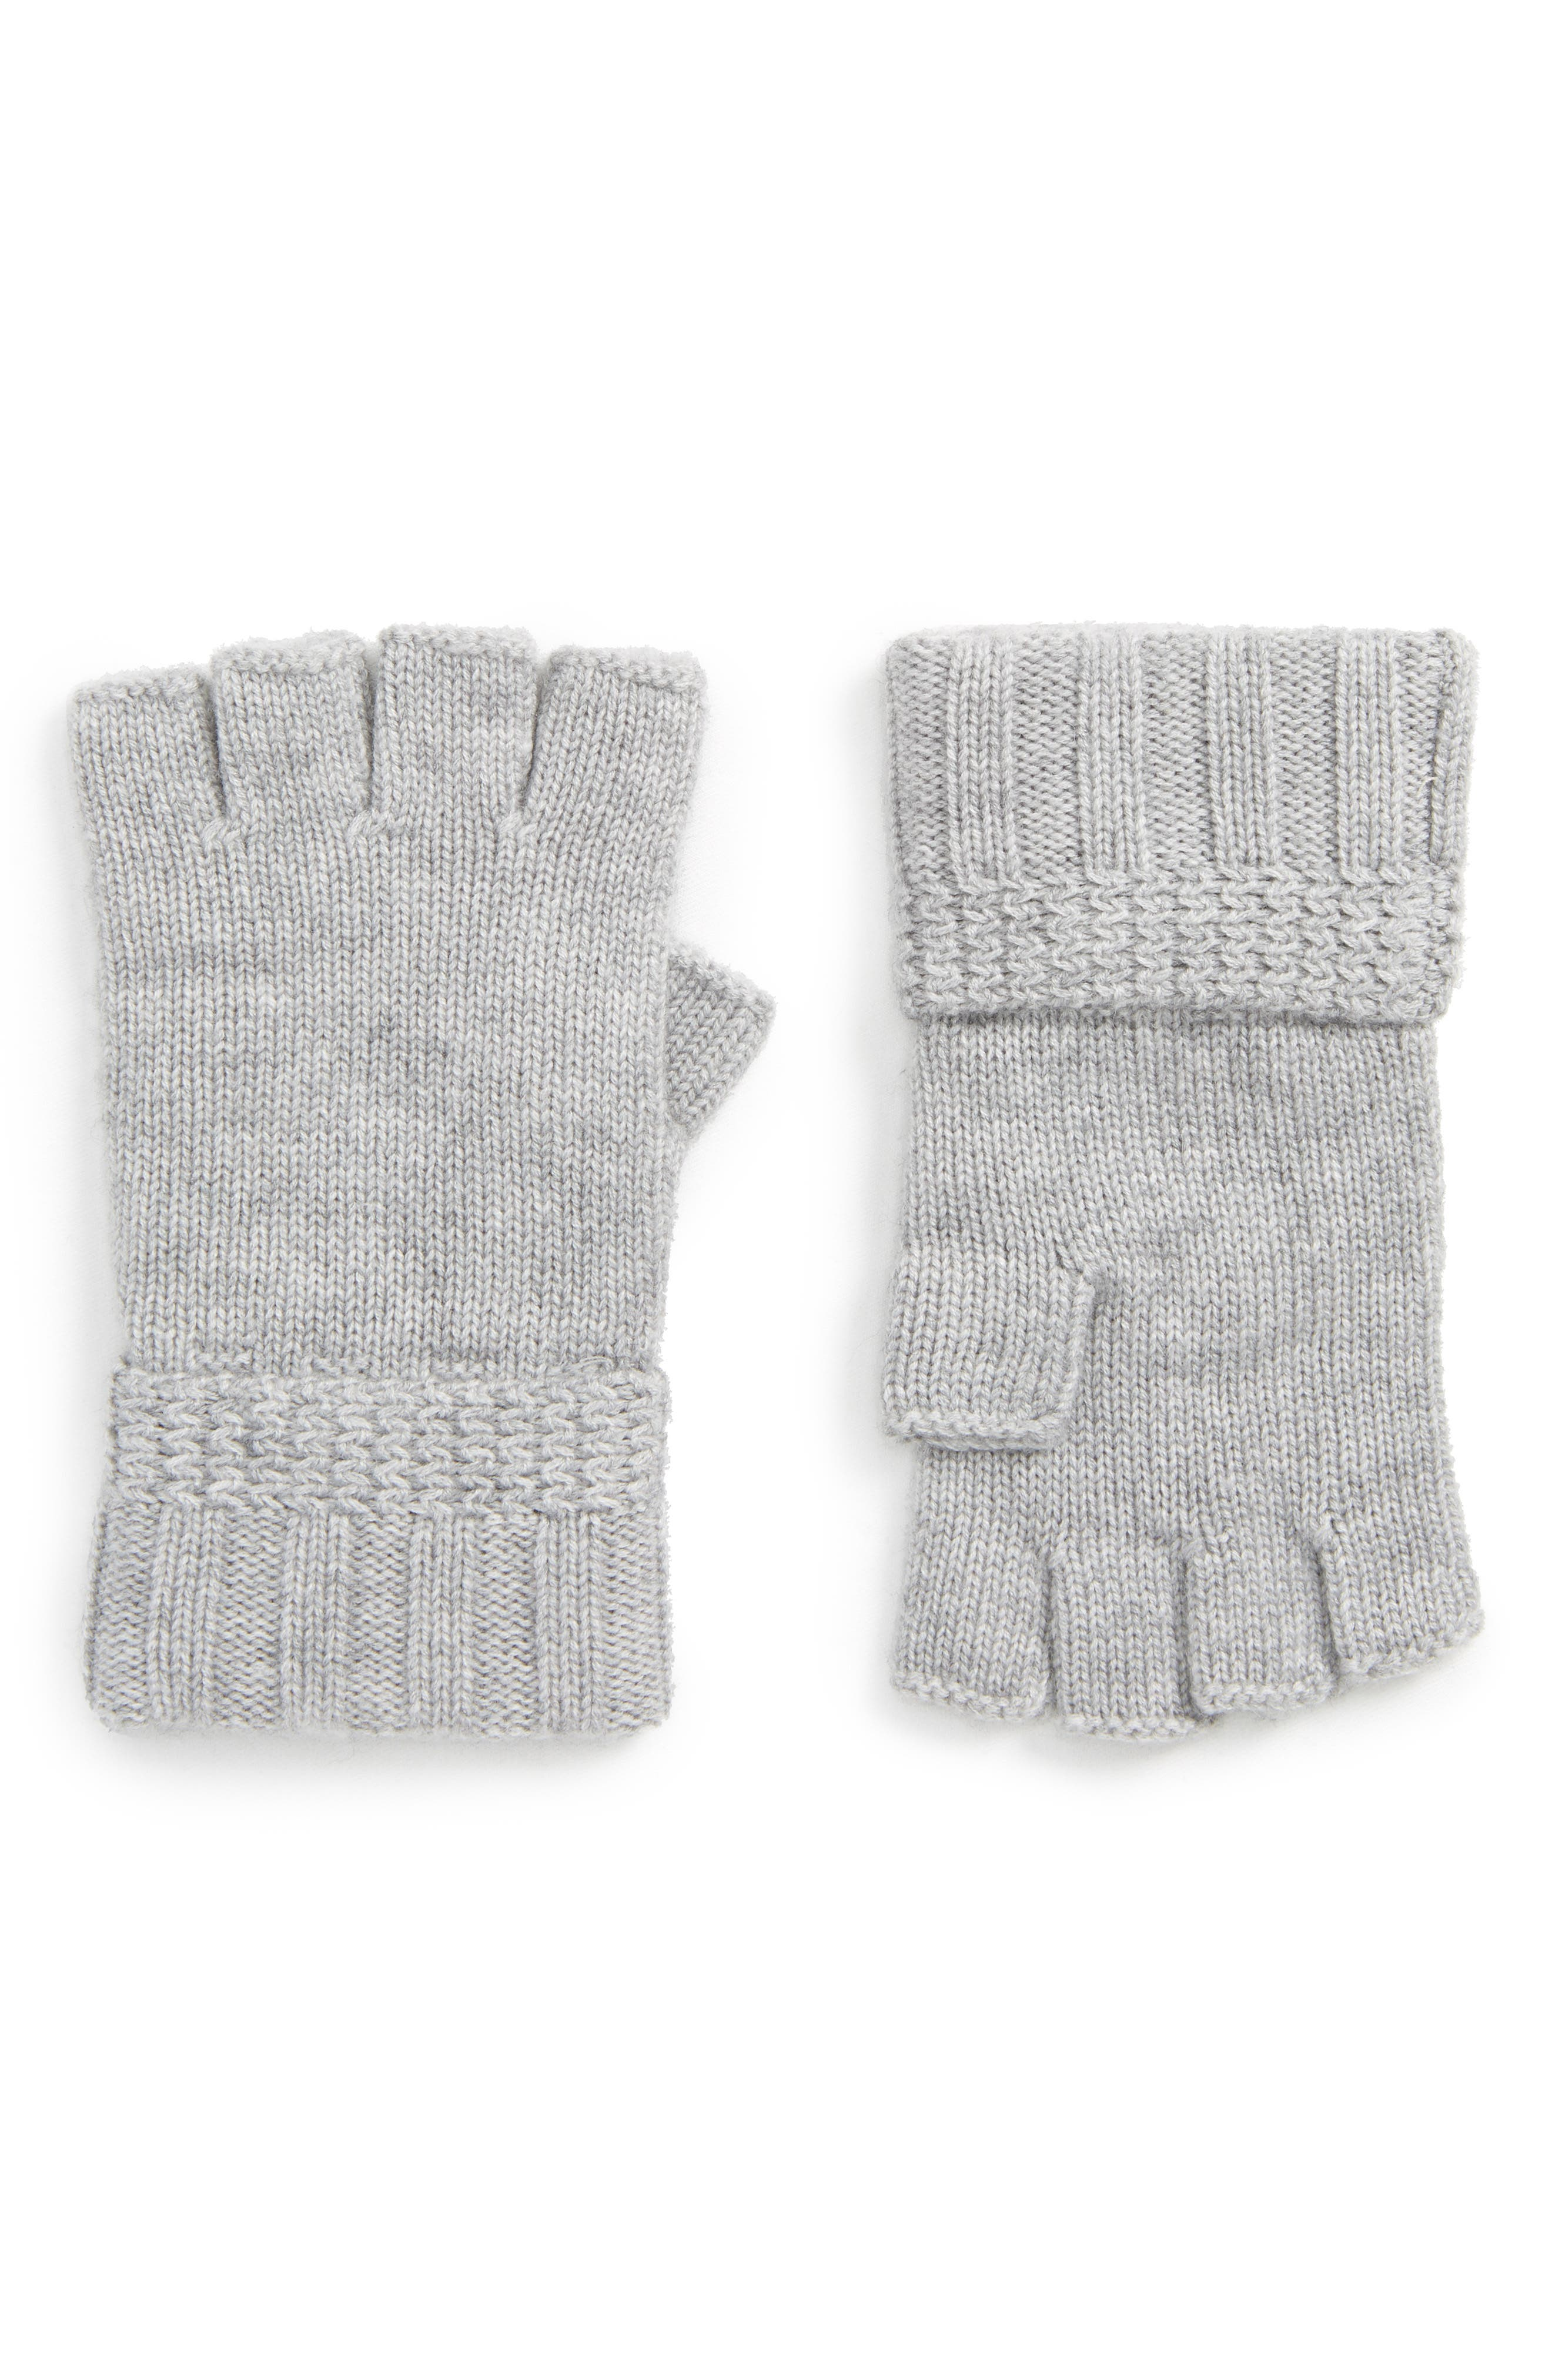 UGG<sup>®</sup> Texture Knit Fingerless Gloves,                         Main,                         color, Sterling Heather